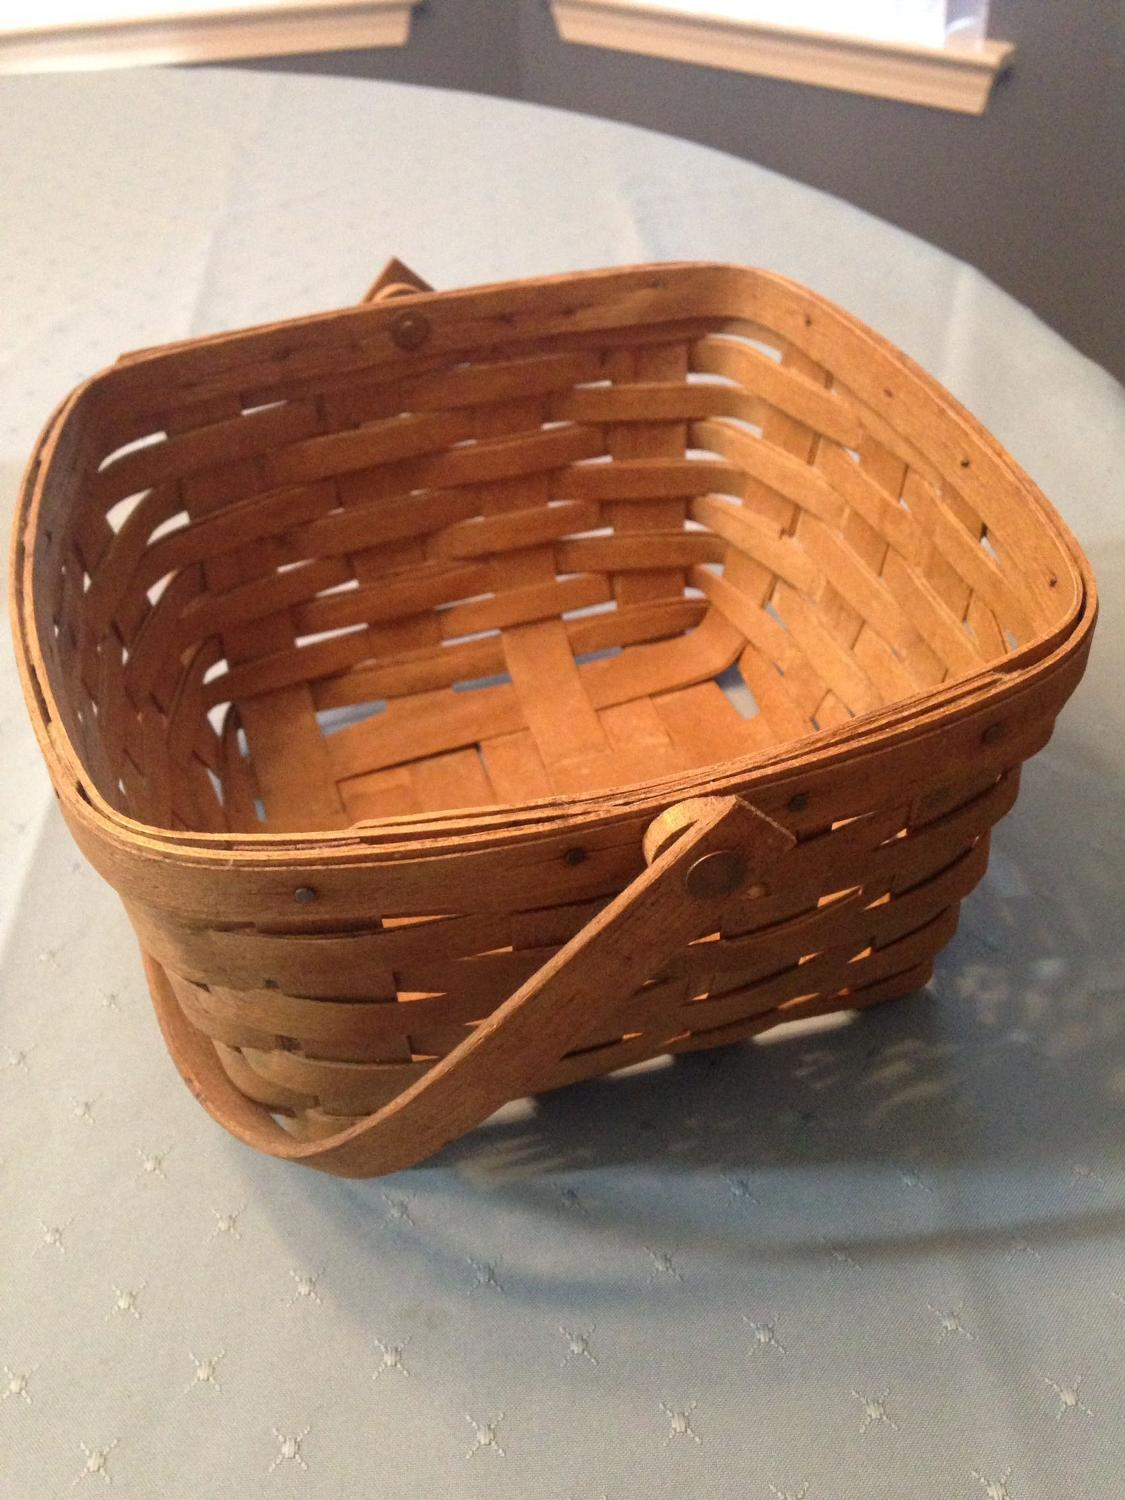 Best basket longaberger for sale in pensacola florida for Longaberger baskets for sale